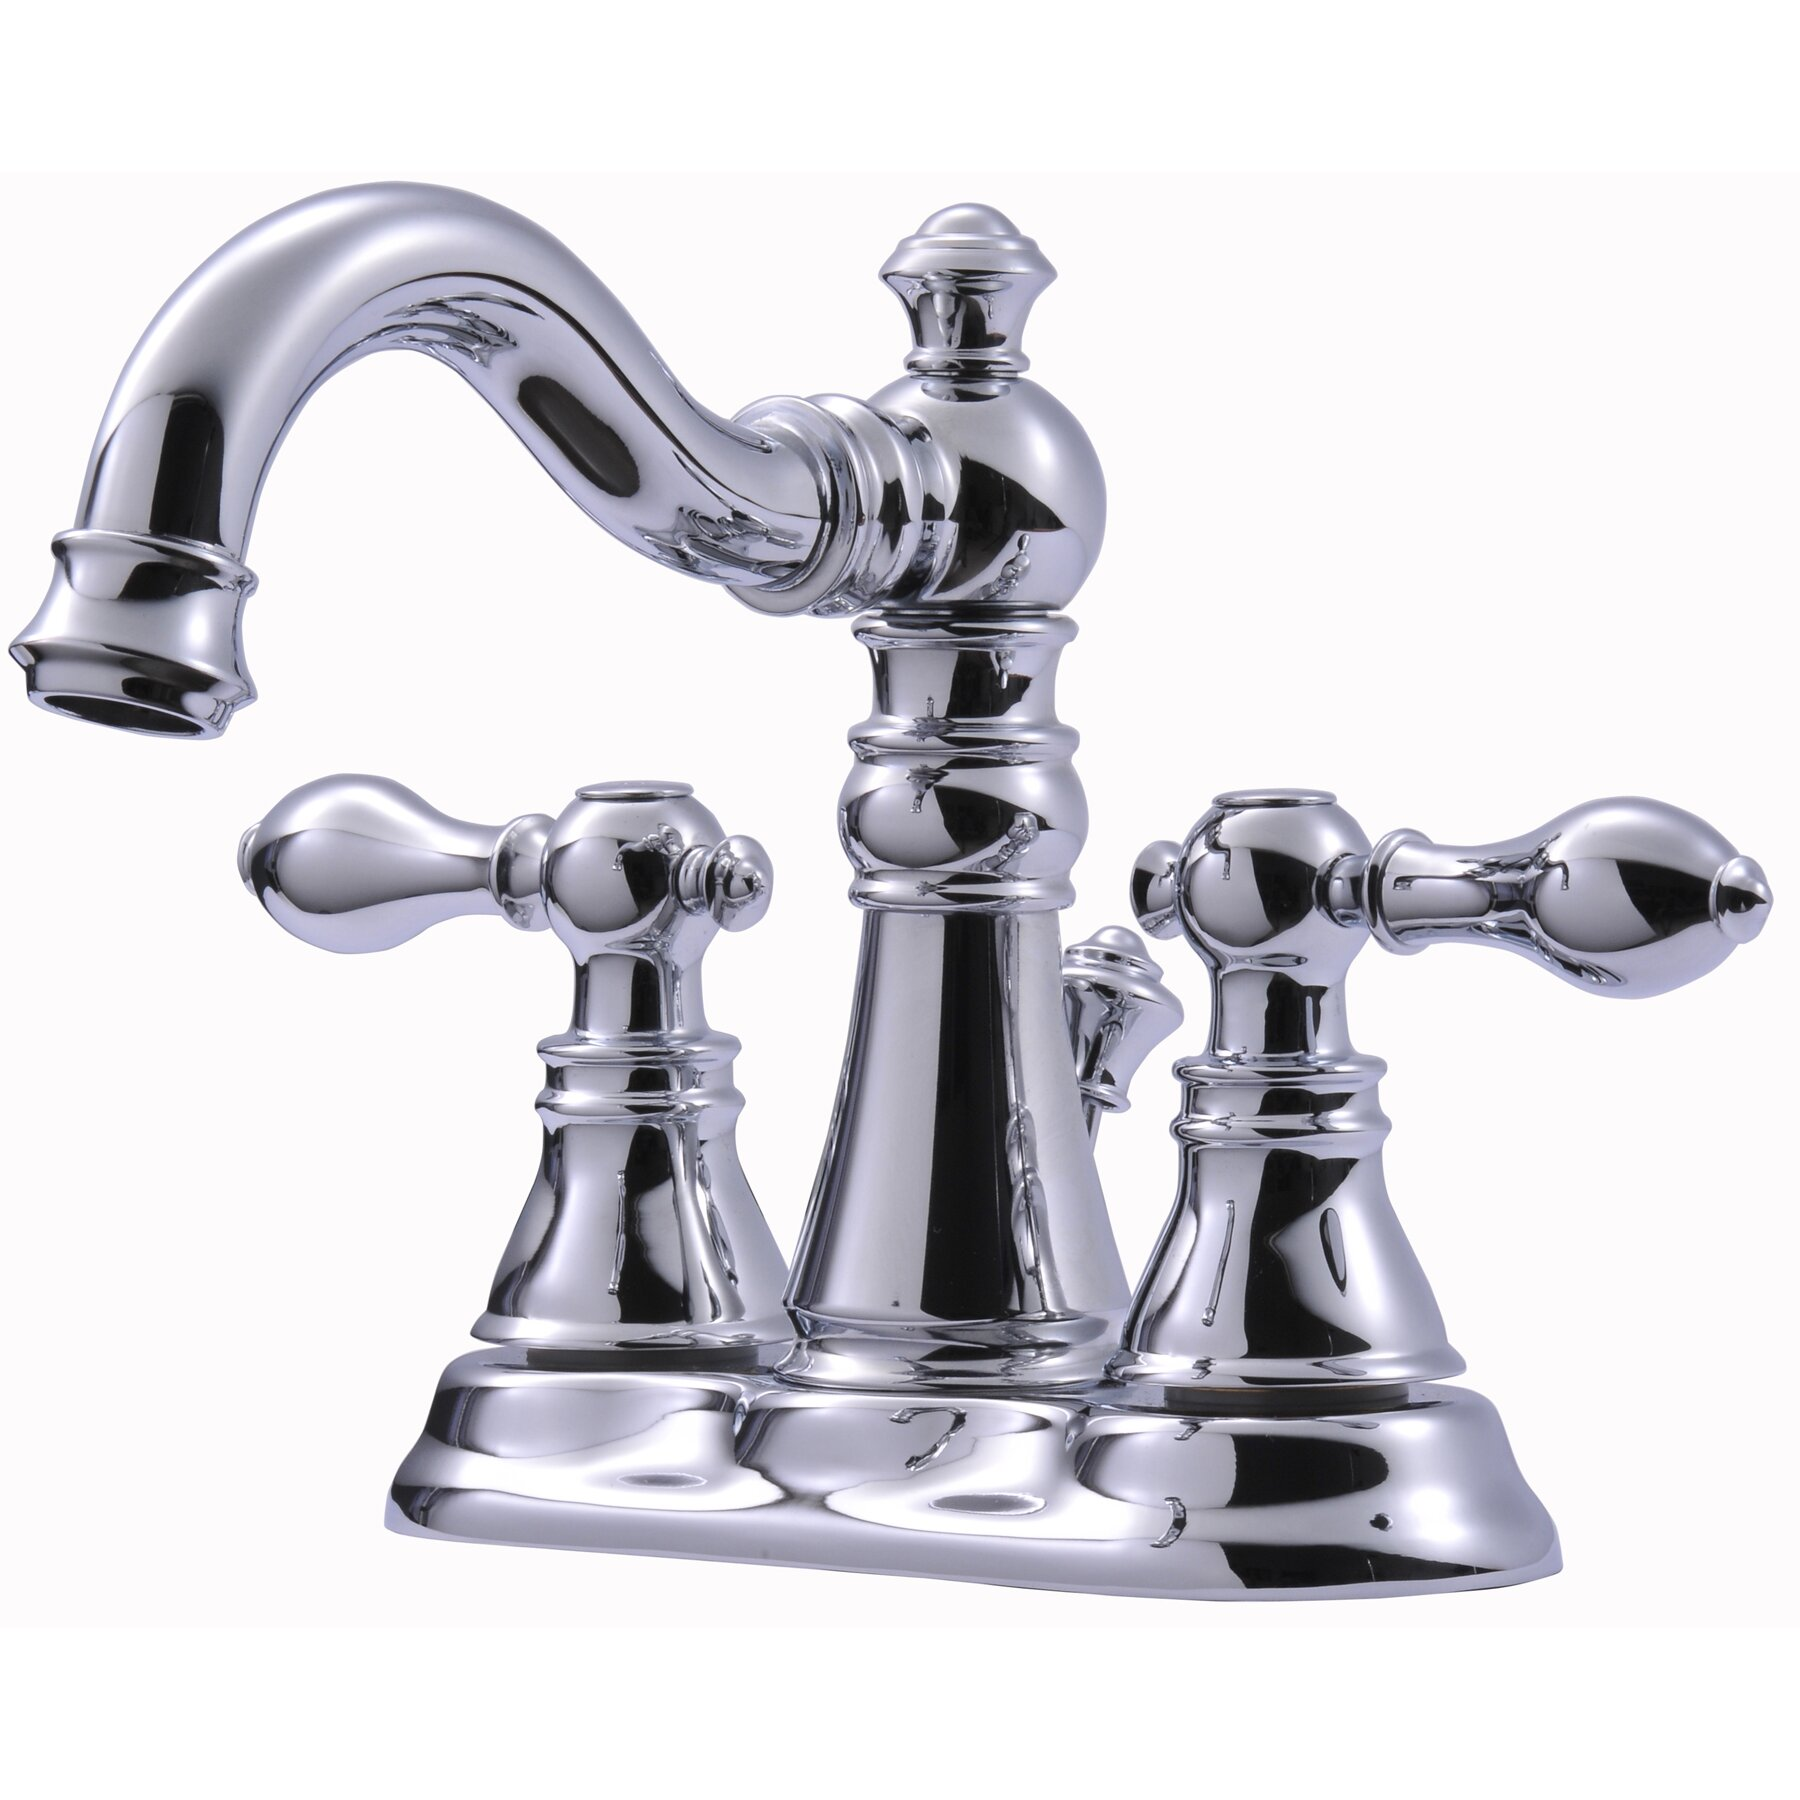 Aqueous Faucet Ballymore Victorian Double Handle Widespread Bathroom Faucet Reviews: Victorian Series Centerset Bathroom Faucet With Double Handles